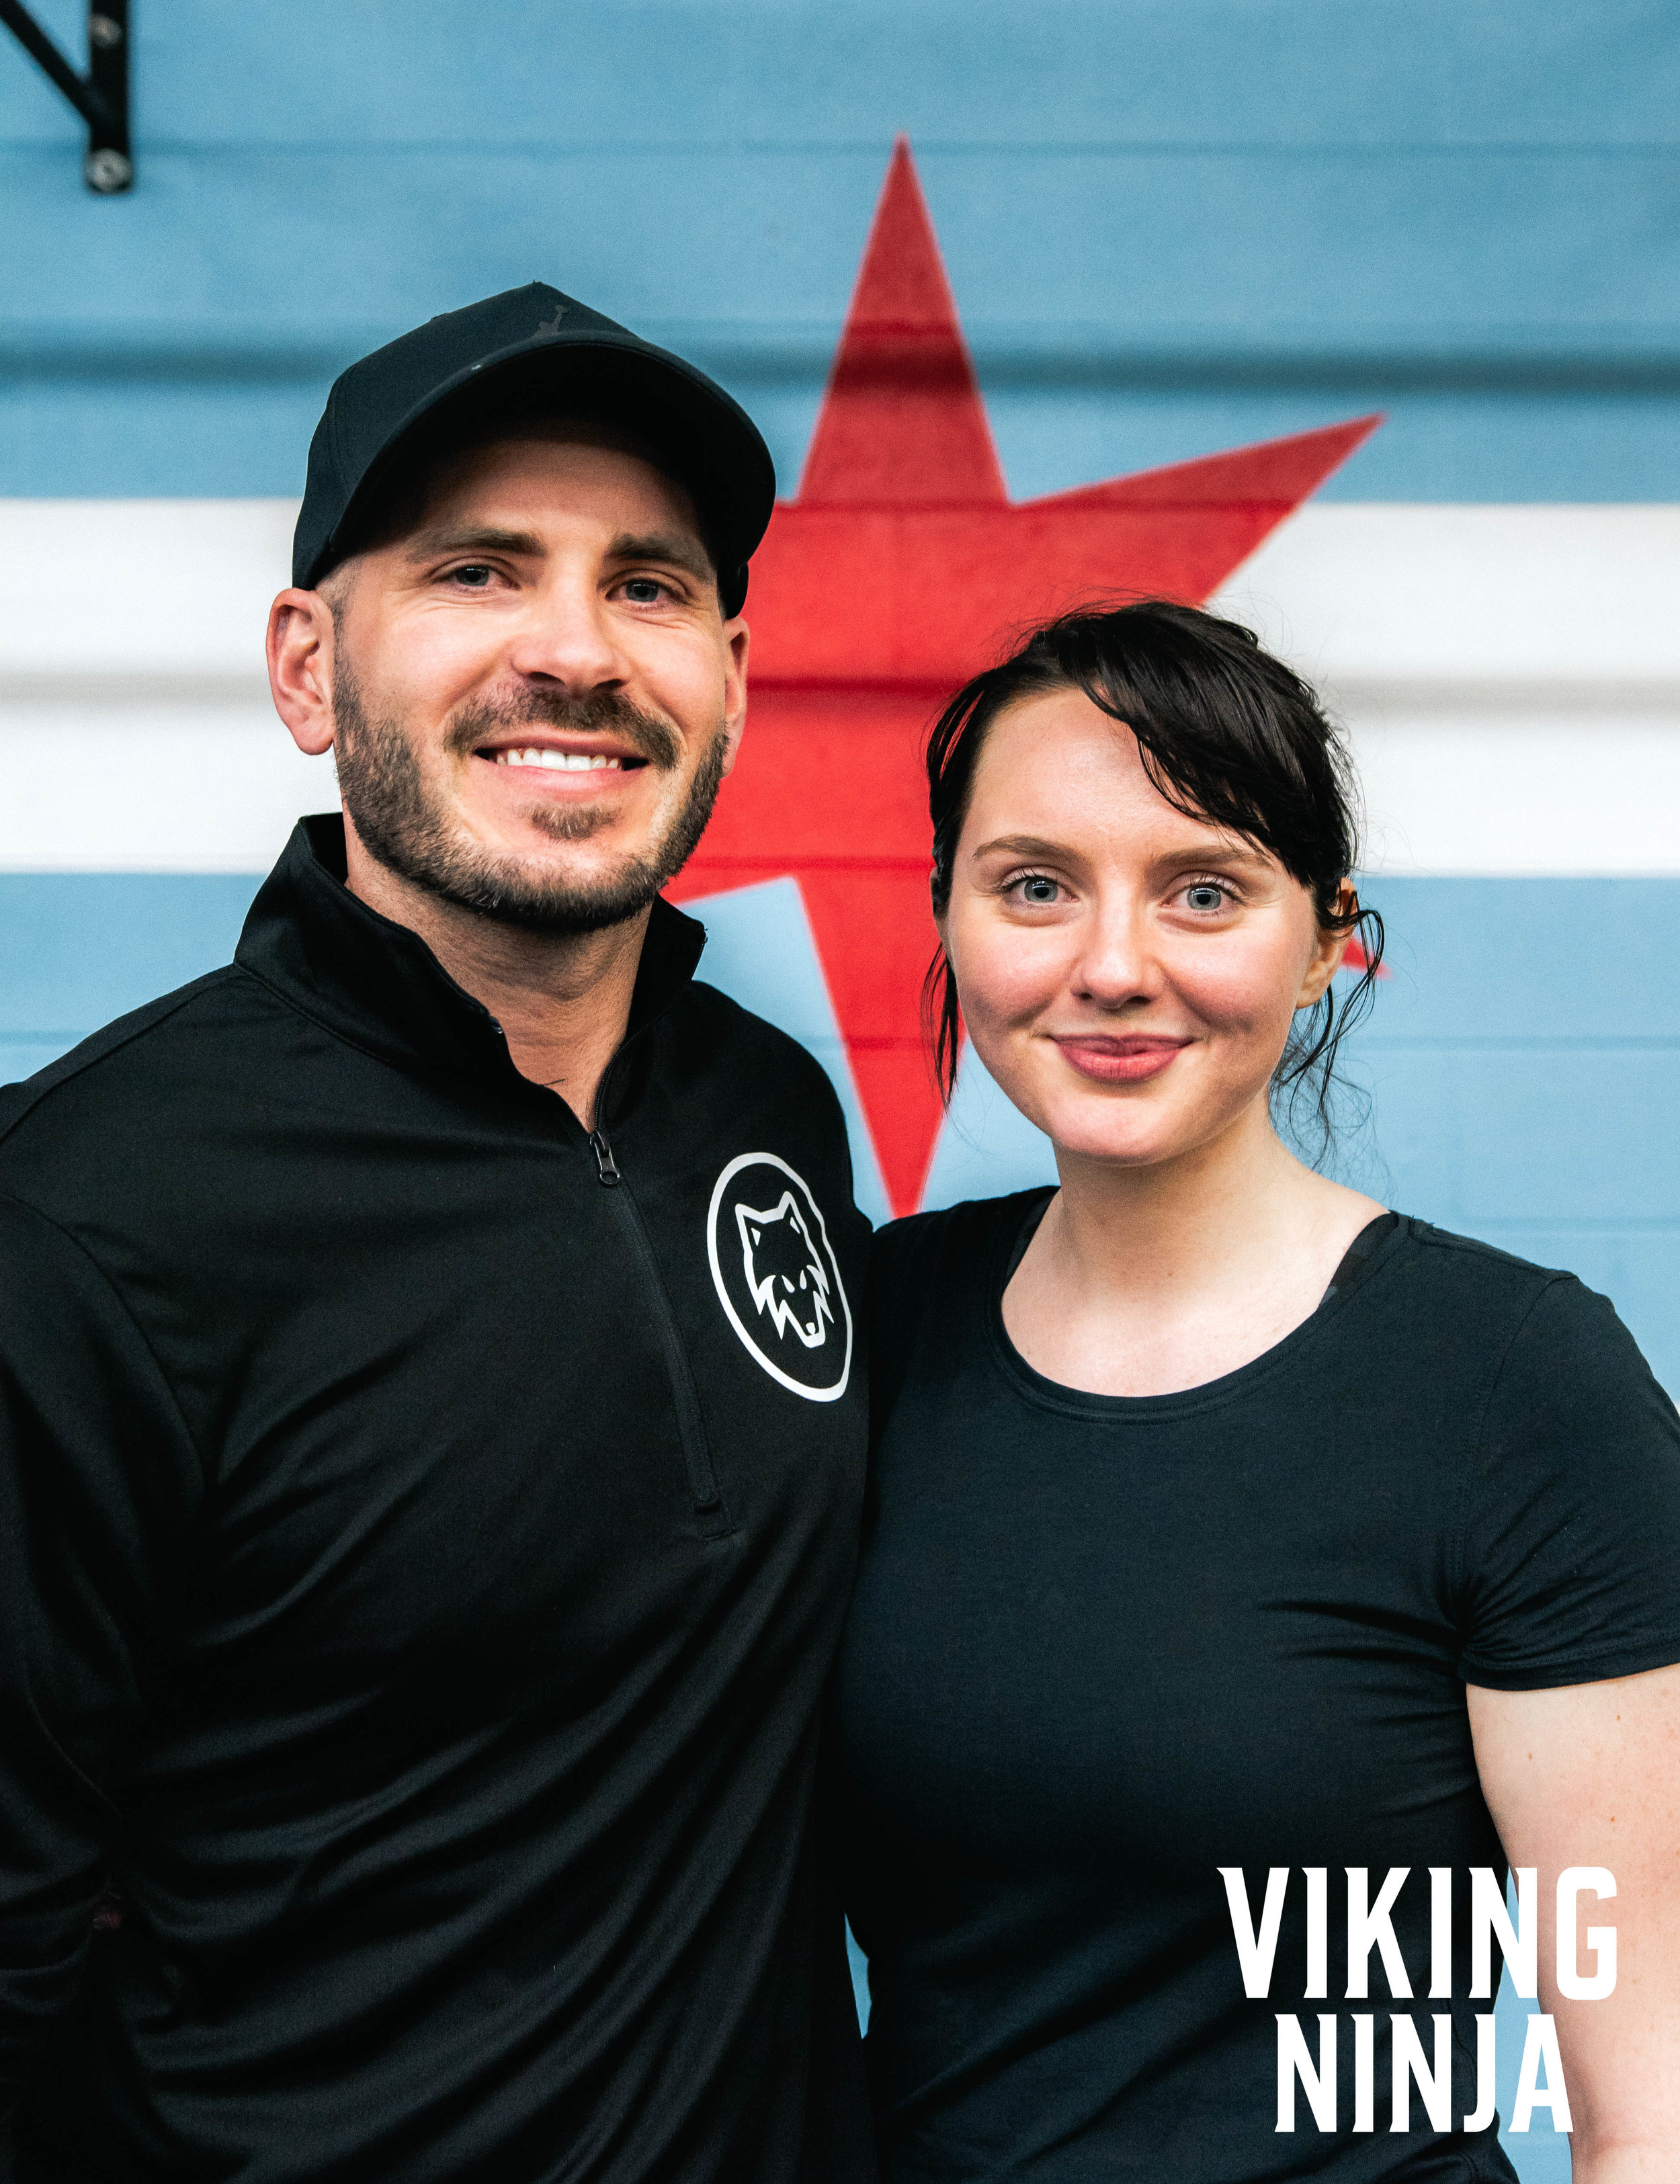 Macaila Britton and Phillip Carlson, Midwest Strength + Performance Gym In West Chicago, IL